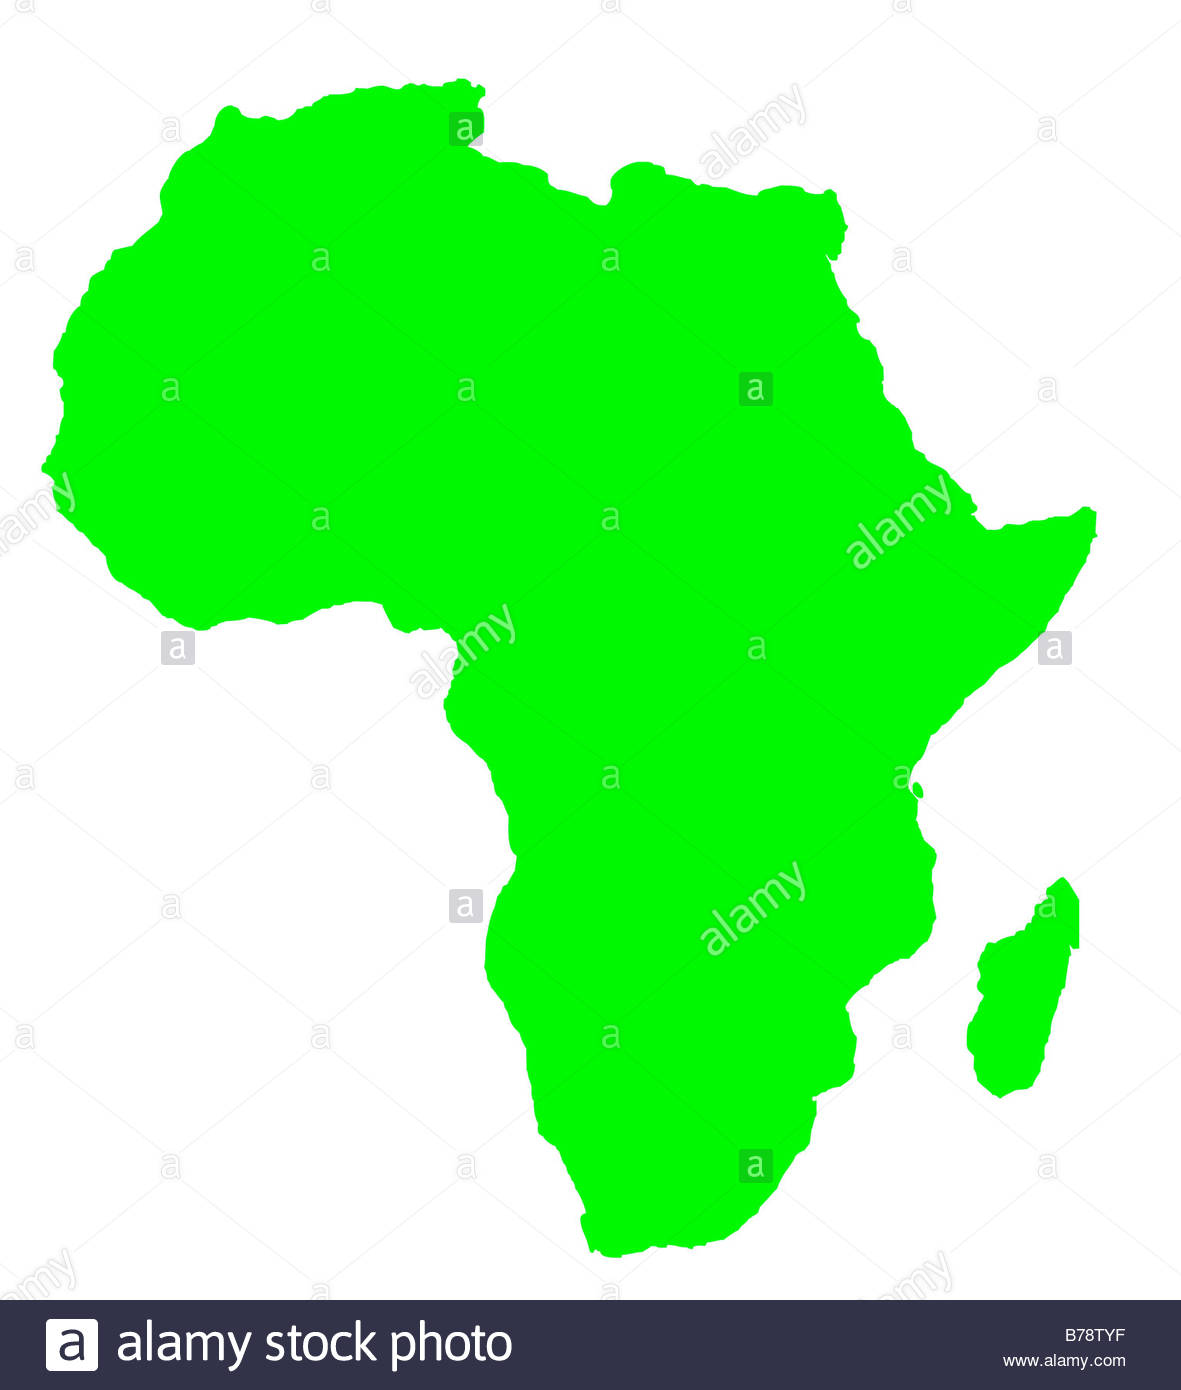 Continent clipart outline Clipart Africa  Outline In